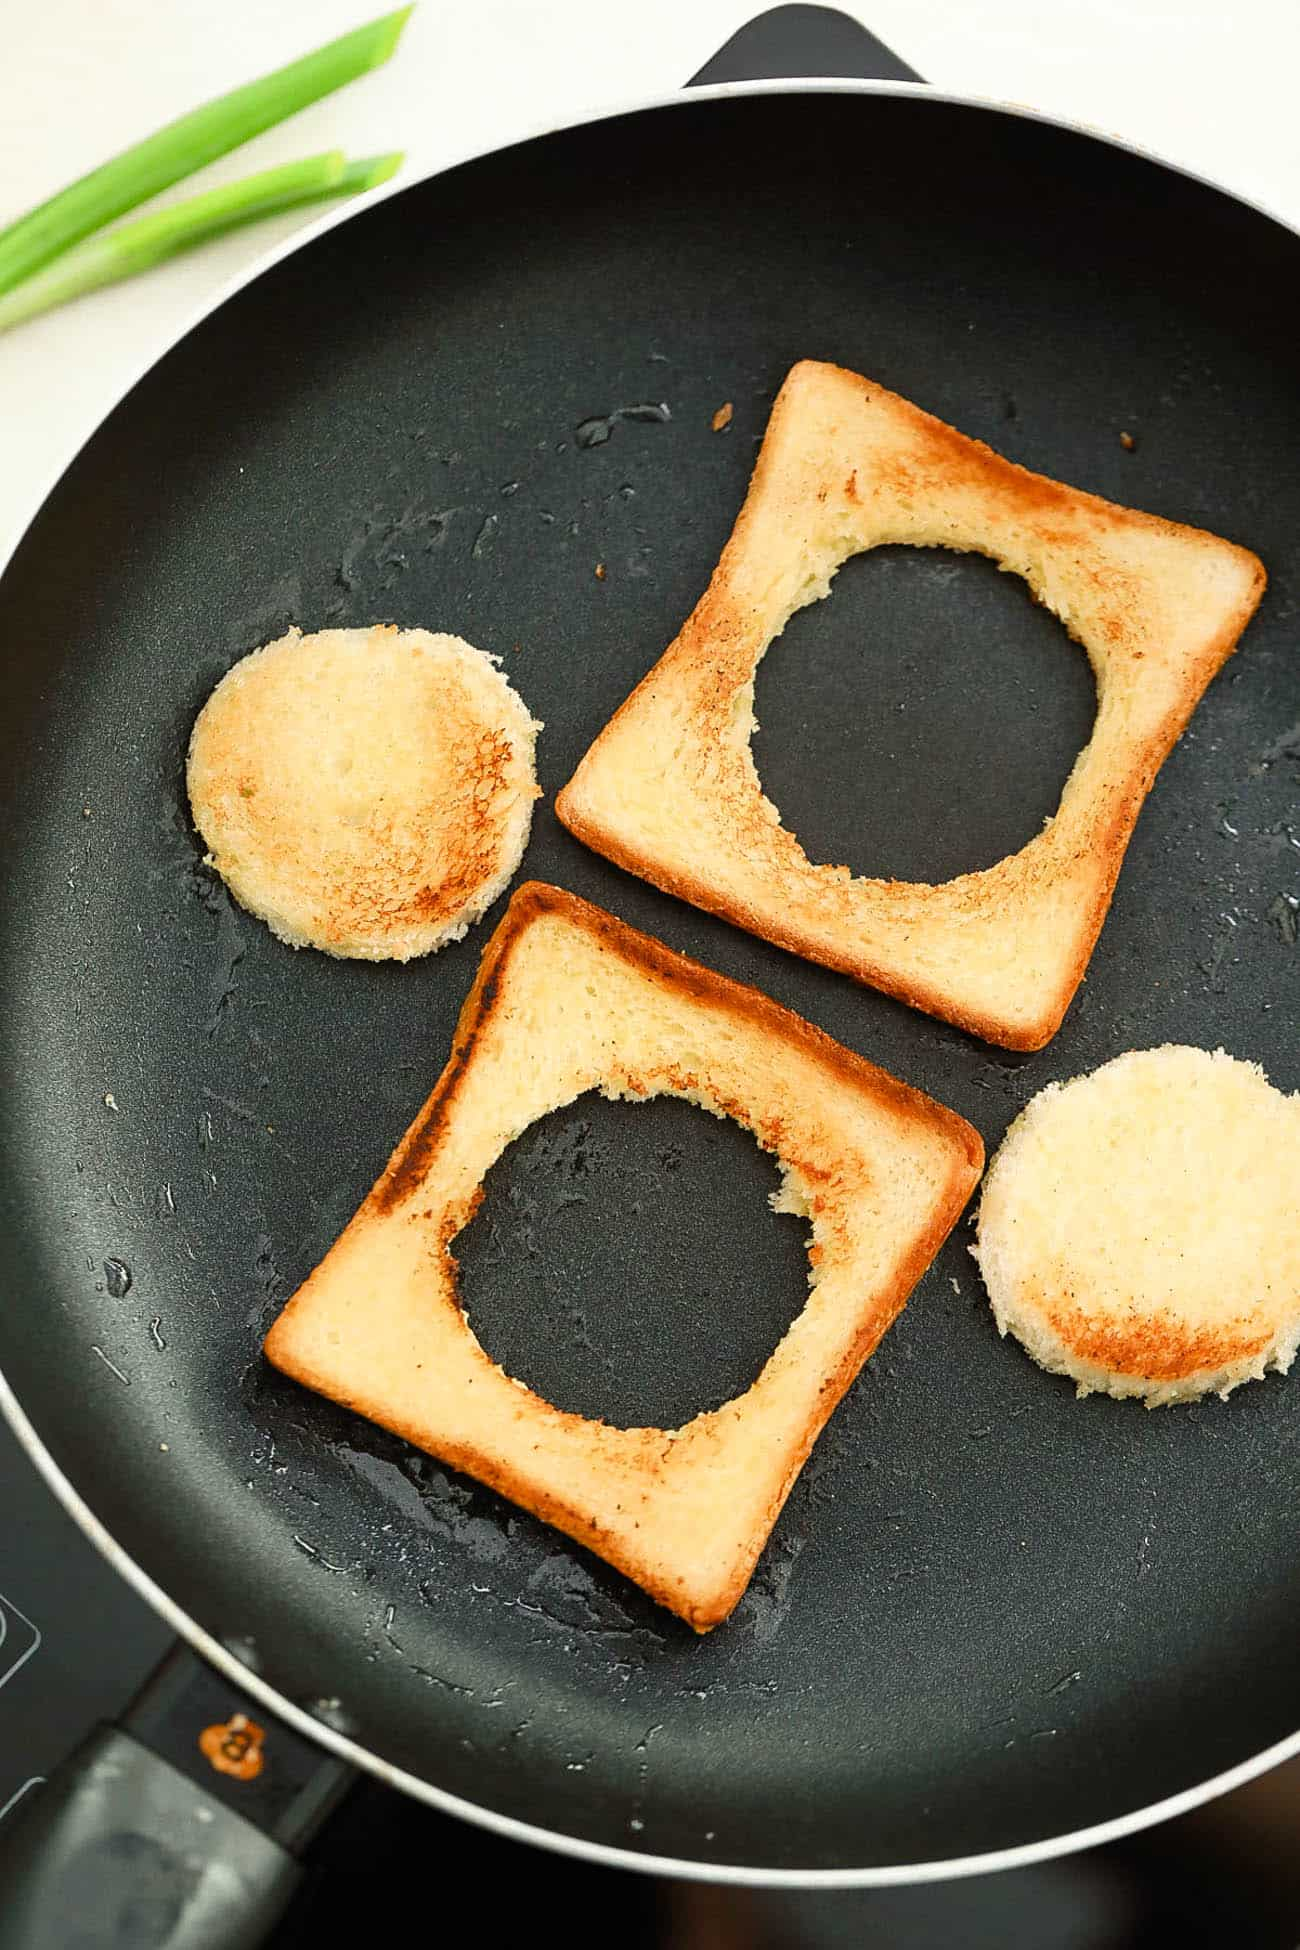 bread toasting in a skillet with a hole cut out of the center